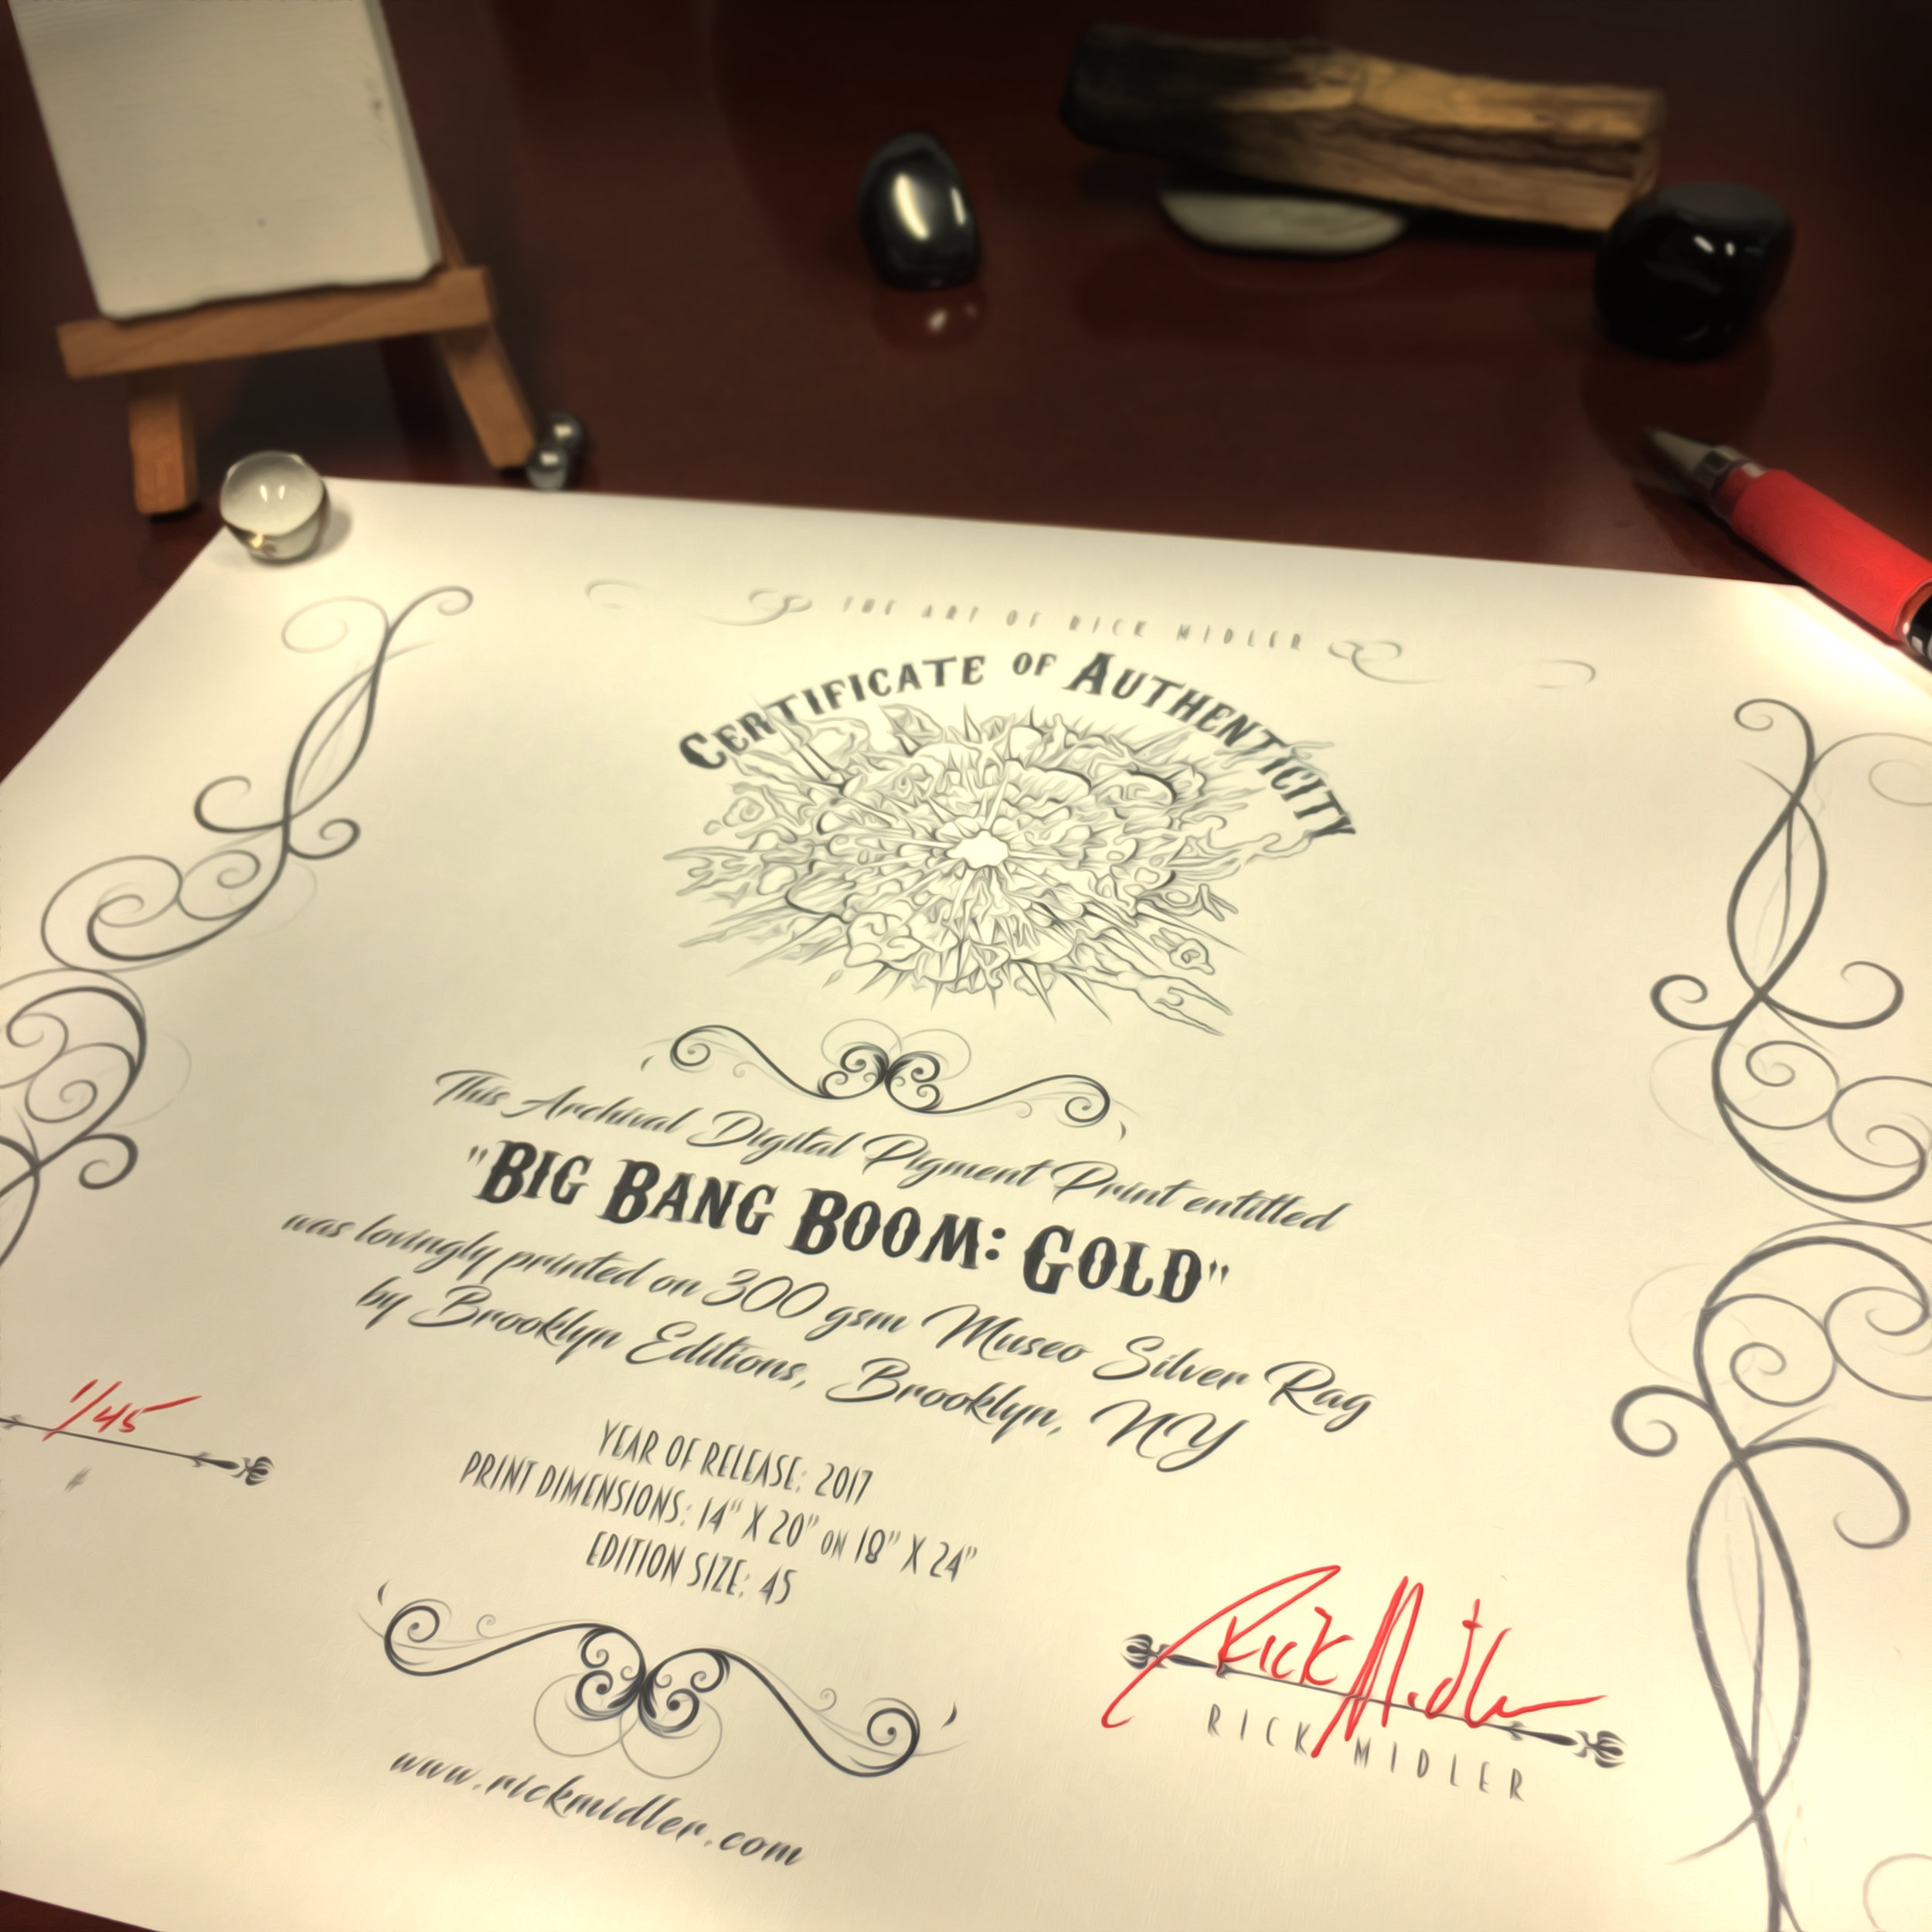 Every Big Bang Boom print comes with a signed Certificate of Authenticity.